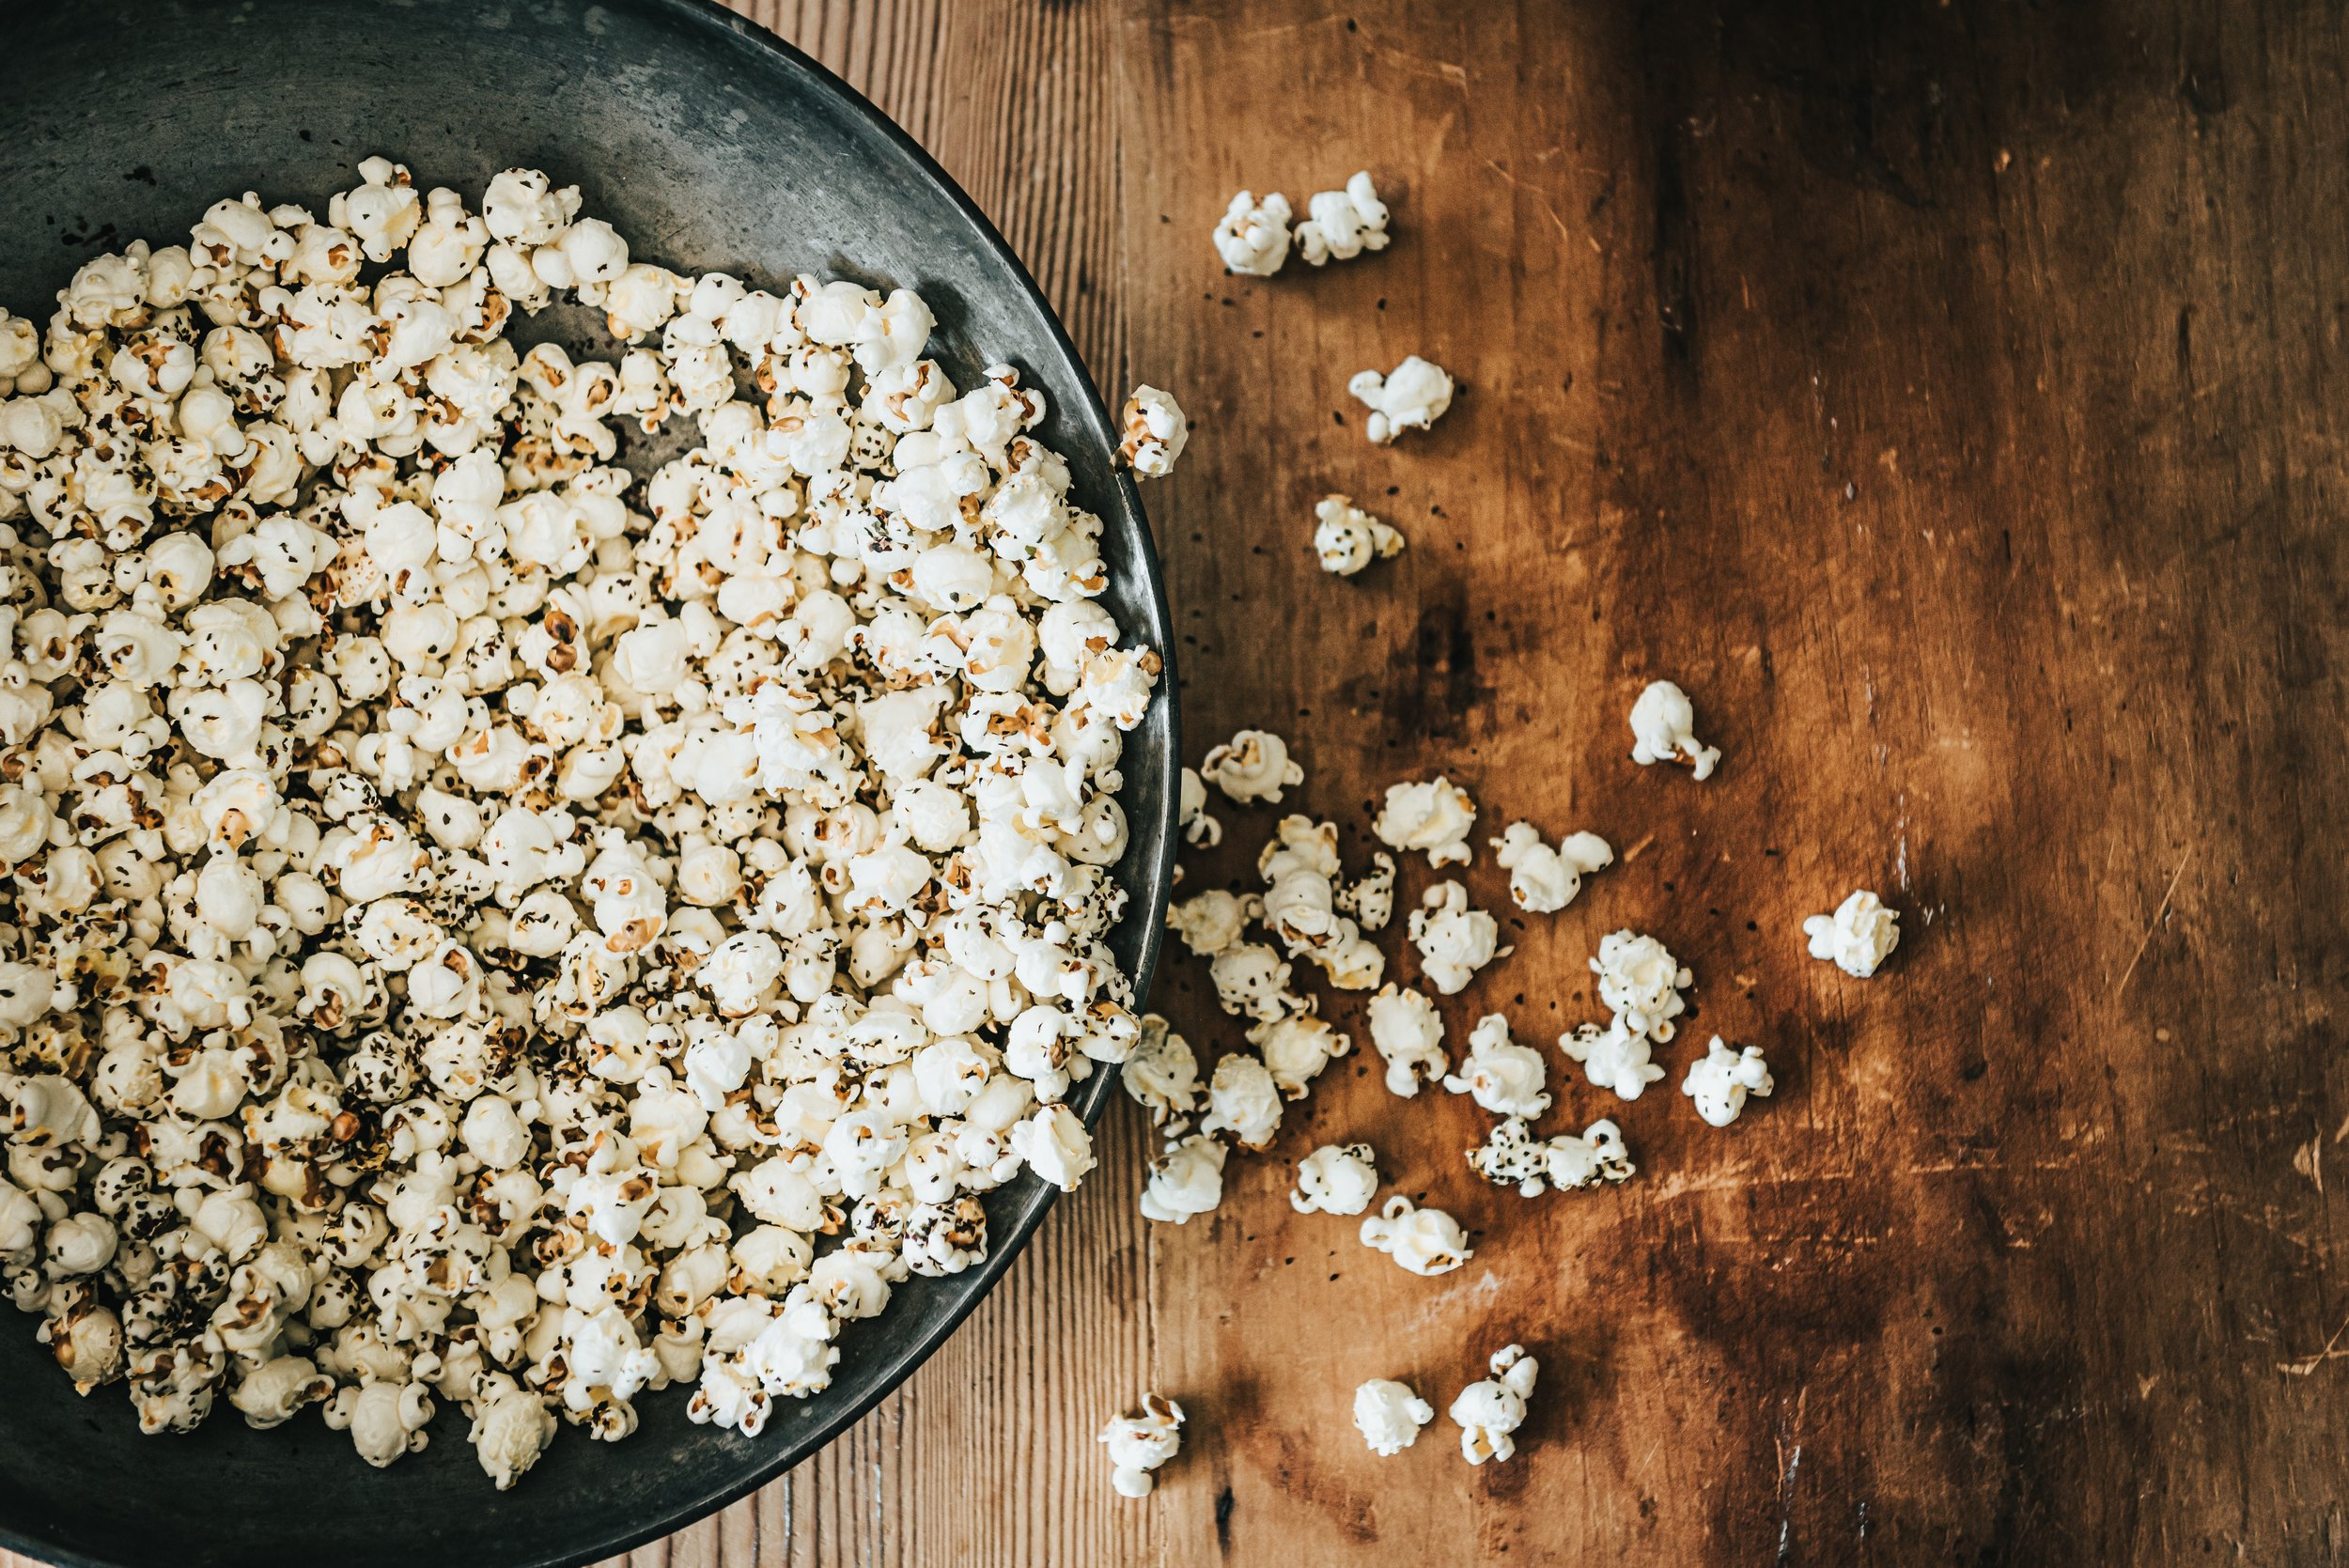 Other ideas… - Add Roasted Seaweed flakes to:- Your favourite salads- Devilled Eggs as a garnish- Sprinkle over popcorn instead of salt